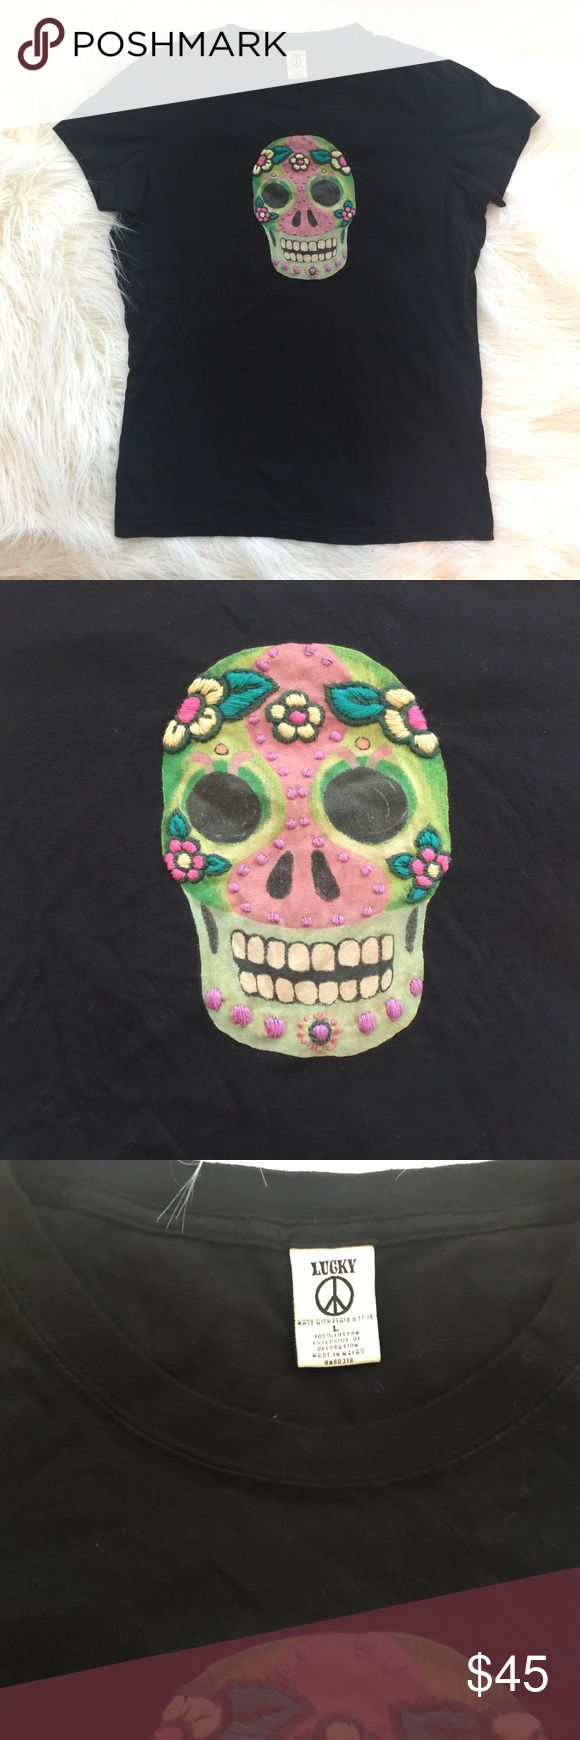 Rare Lucky Brand Candy Skull Top Large Tee Candy skull short sleeve tee by Lucky Brand. Great design and embroidery on this rare and hard to find top! Size large. Lucky Brand Tops Tees - Short Sleeve